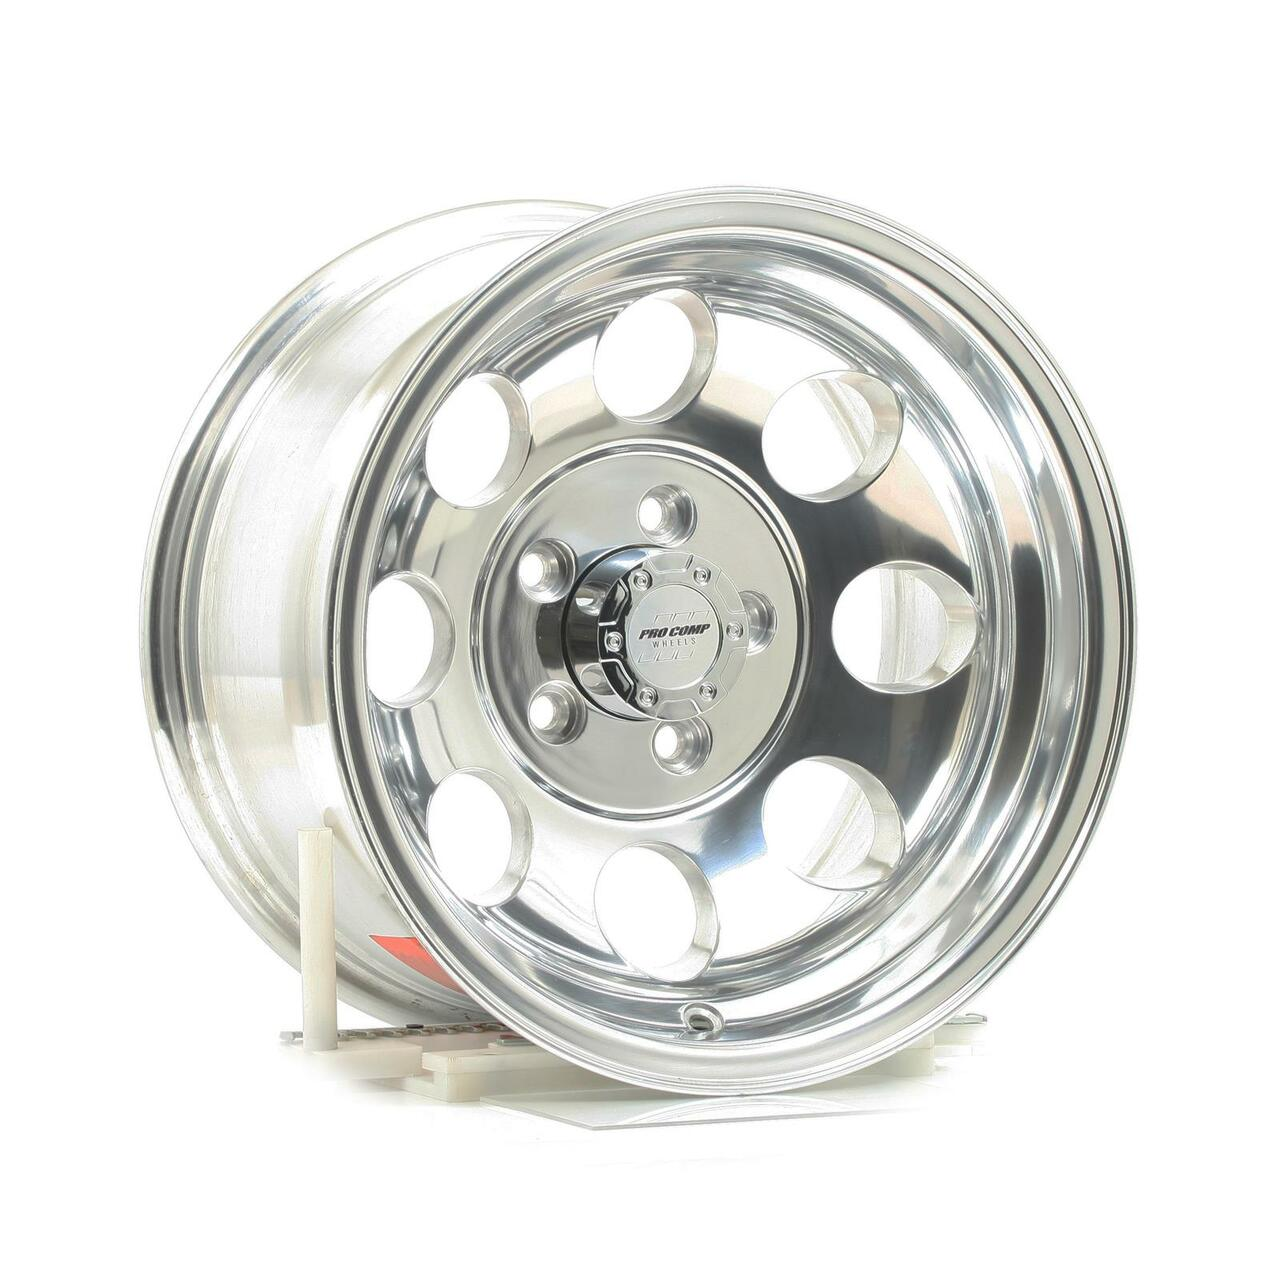 National Tire Wheels 15x10 5x5.5 3.625BS Type 1069 Polished Pro Comp Whee...